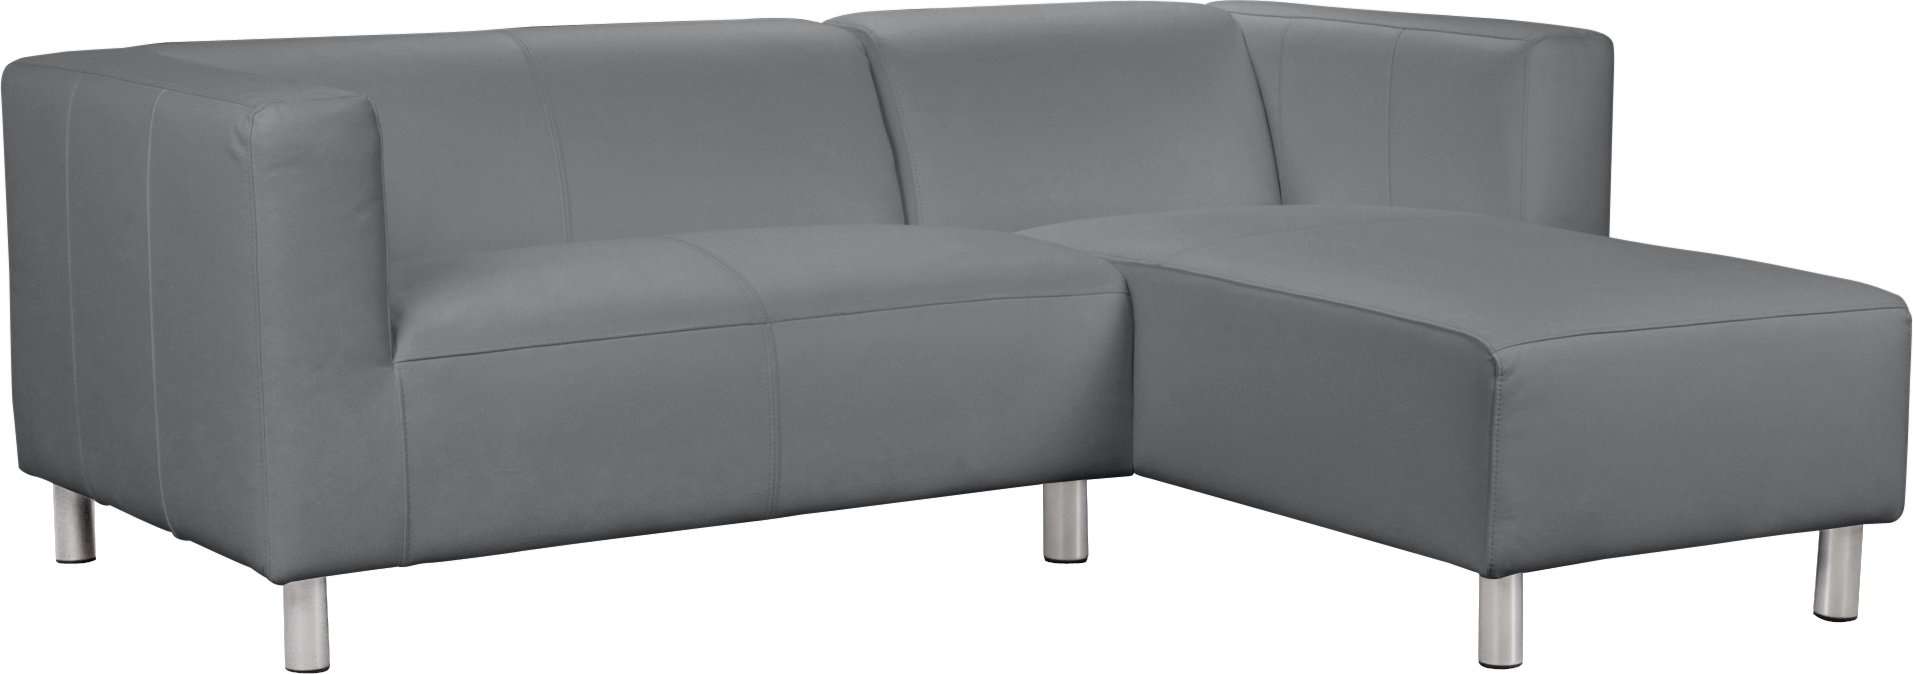 Argos Home Moda Right Corner Faux Leather Sofa - Grey